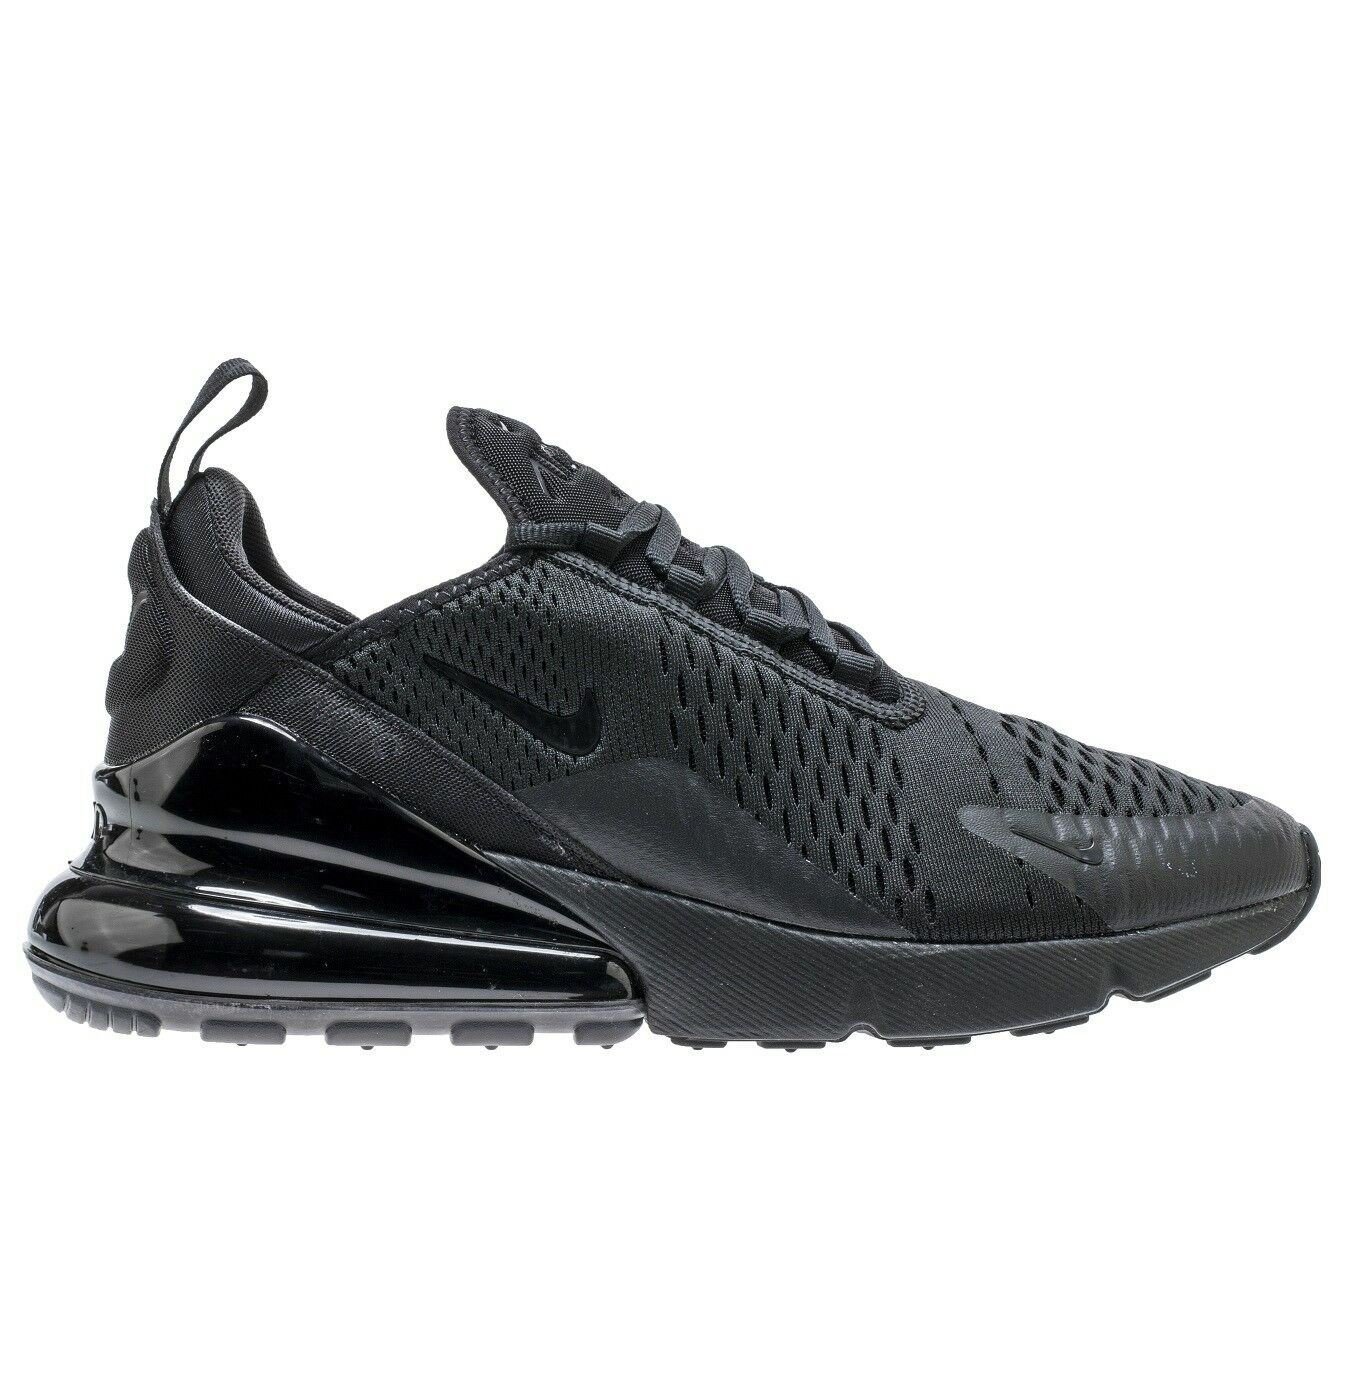 Nike Air Max 270 Mens AH8050-005 Triple Black Mesh Knit Running Shoes Size 8.5